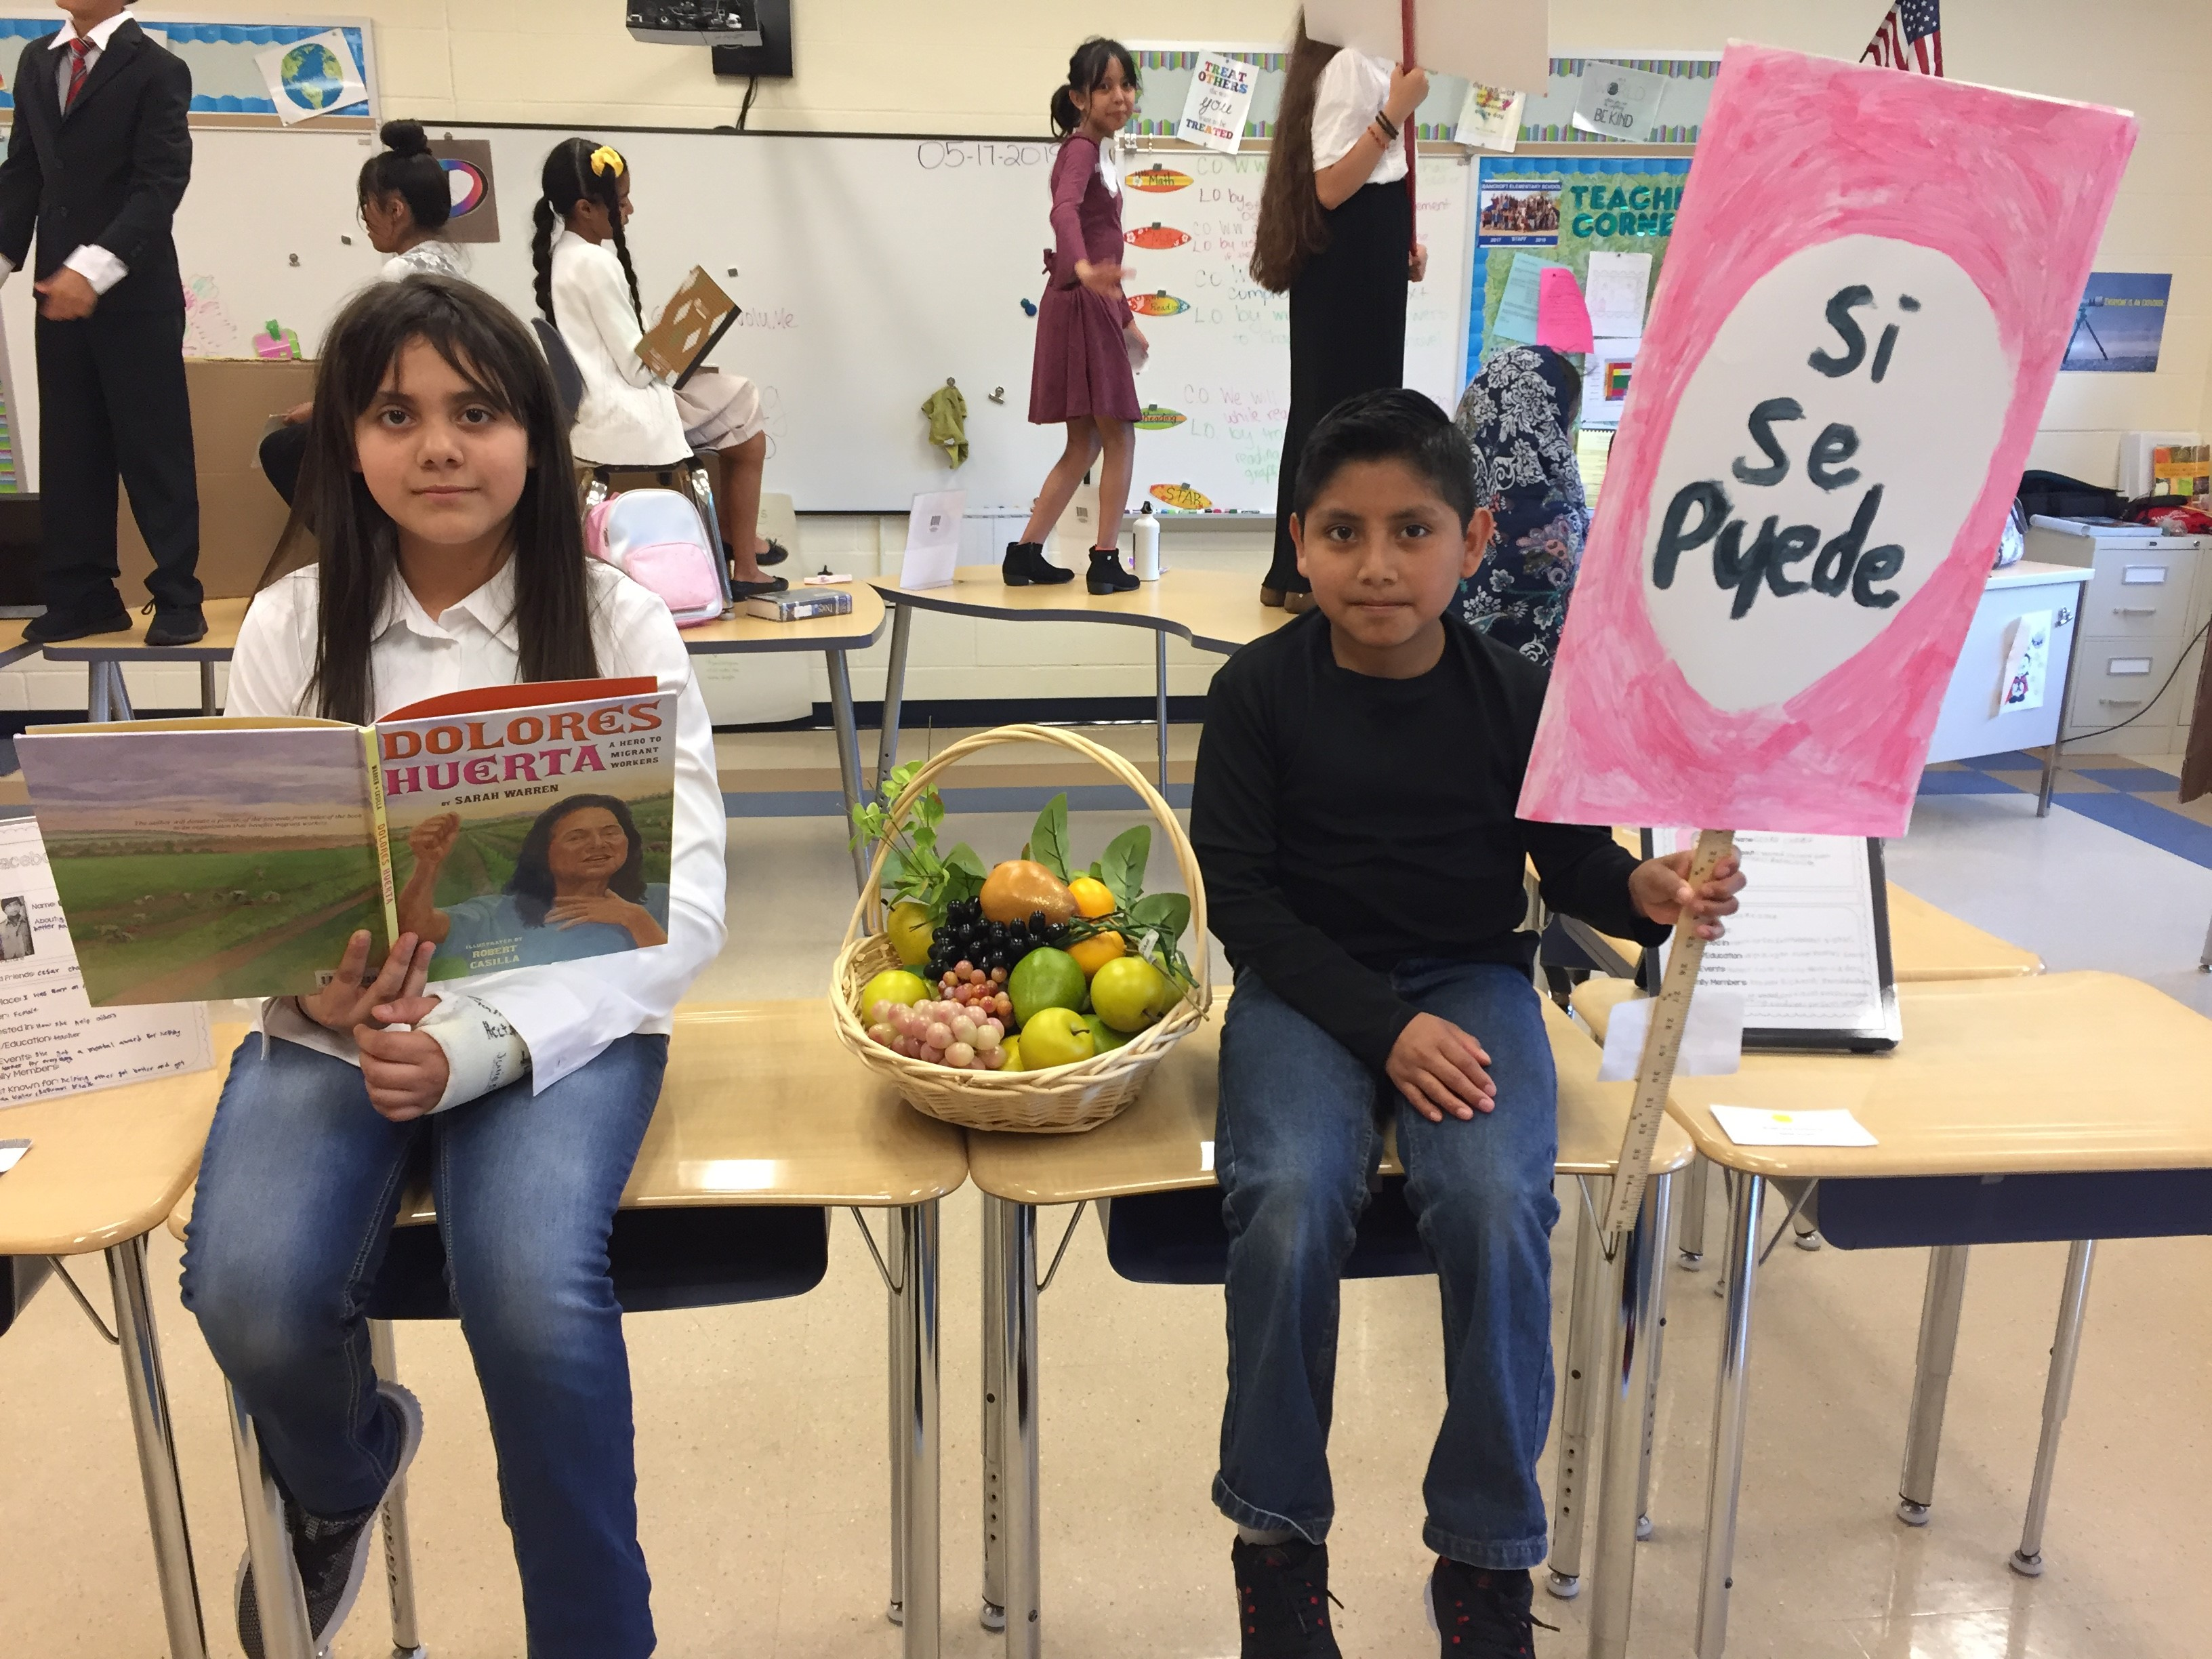 students sitting on desks holding a book and sign